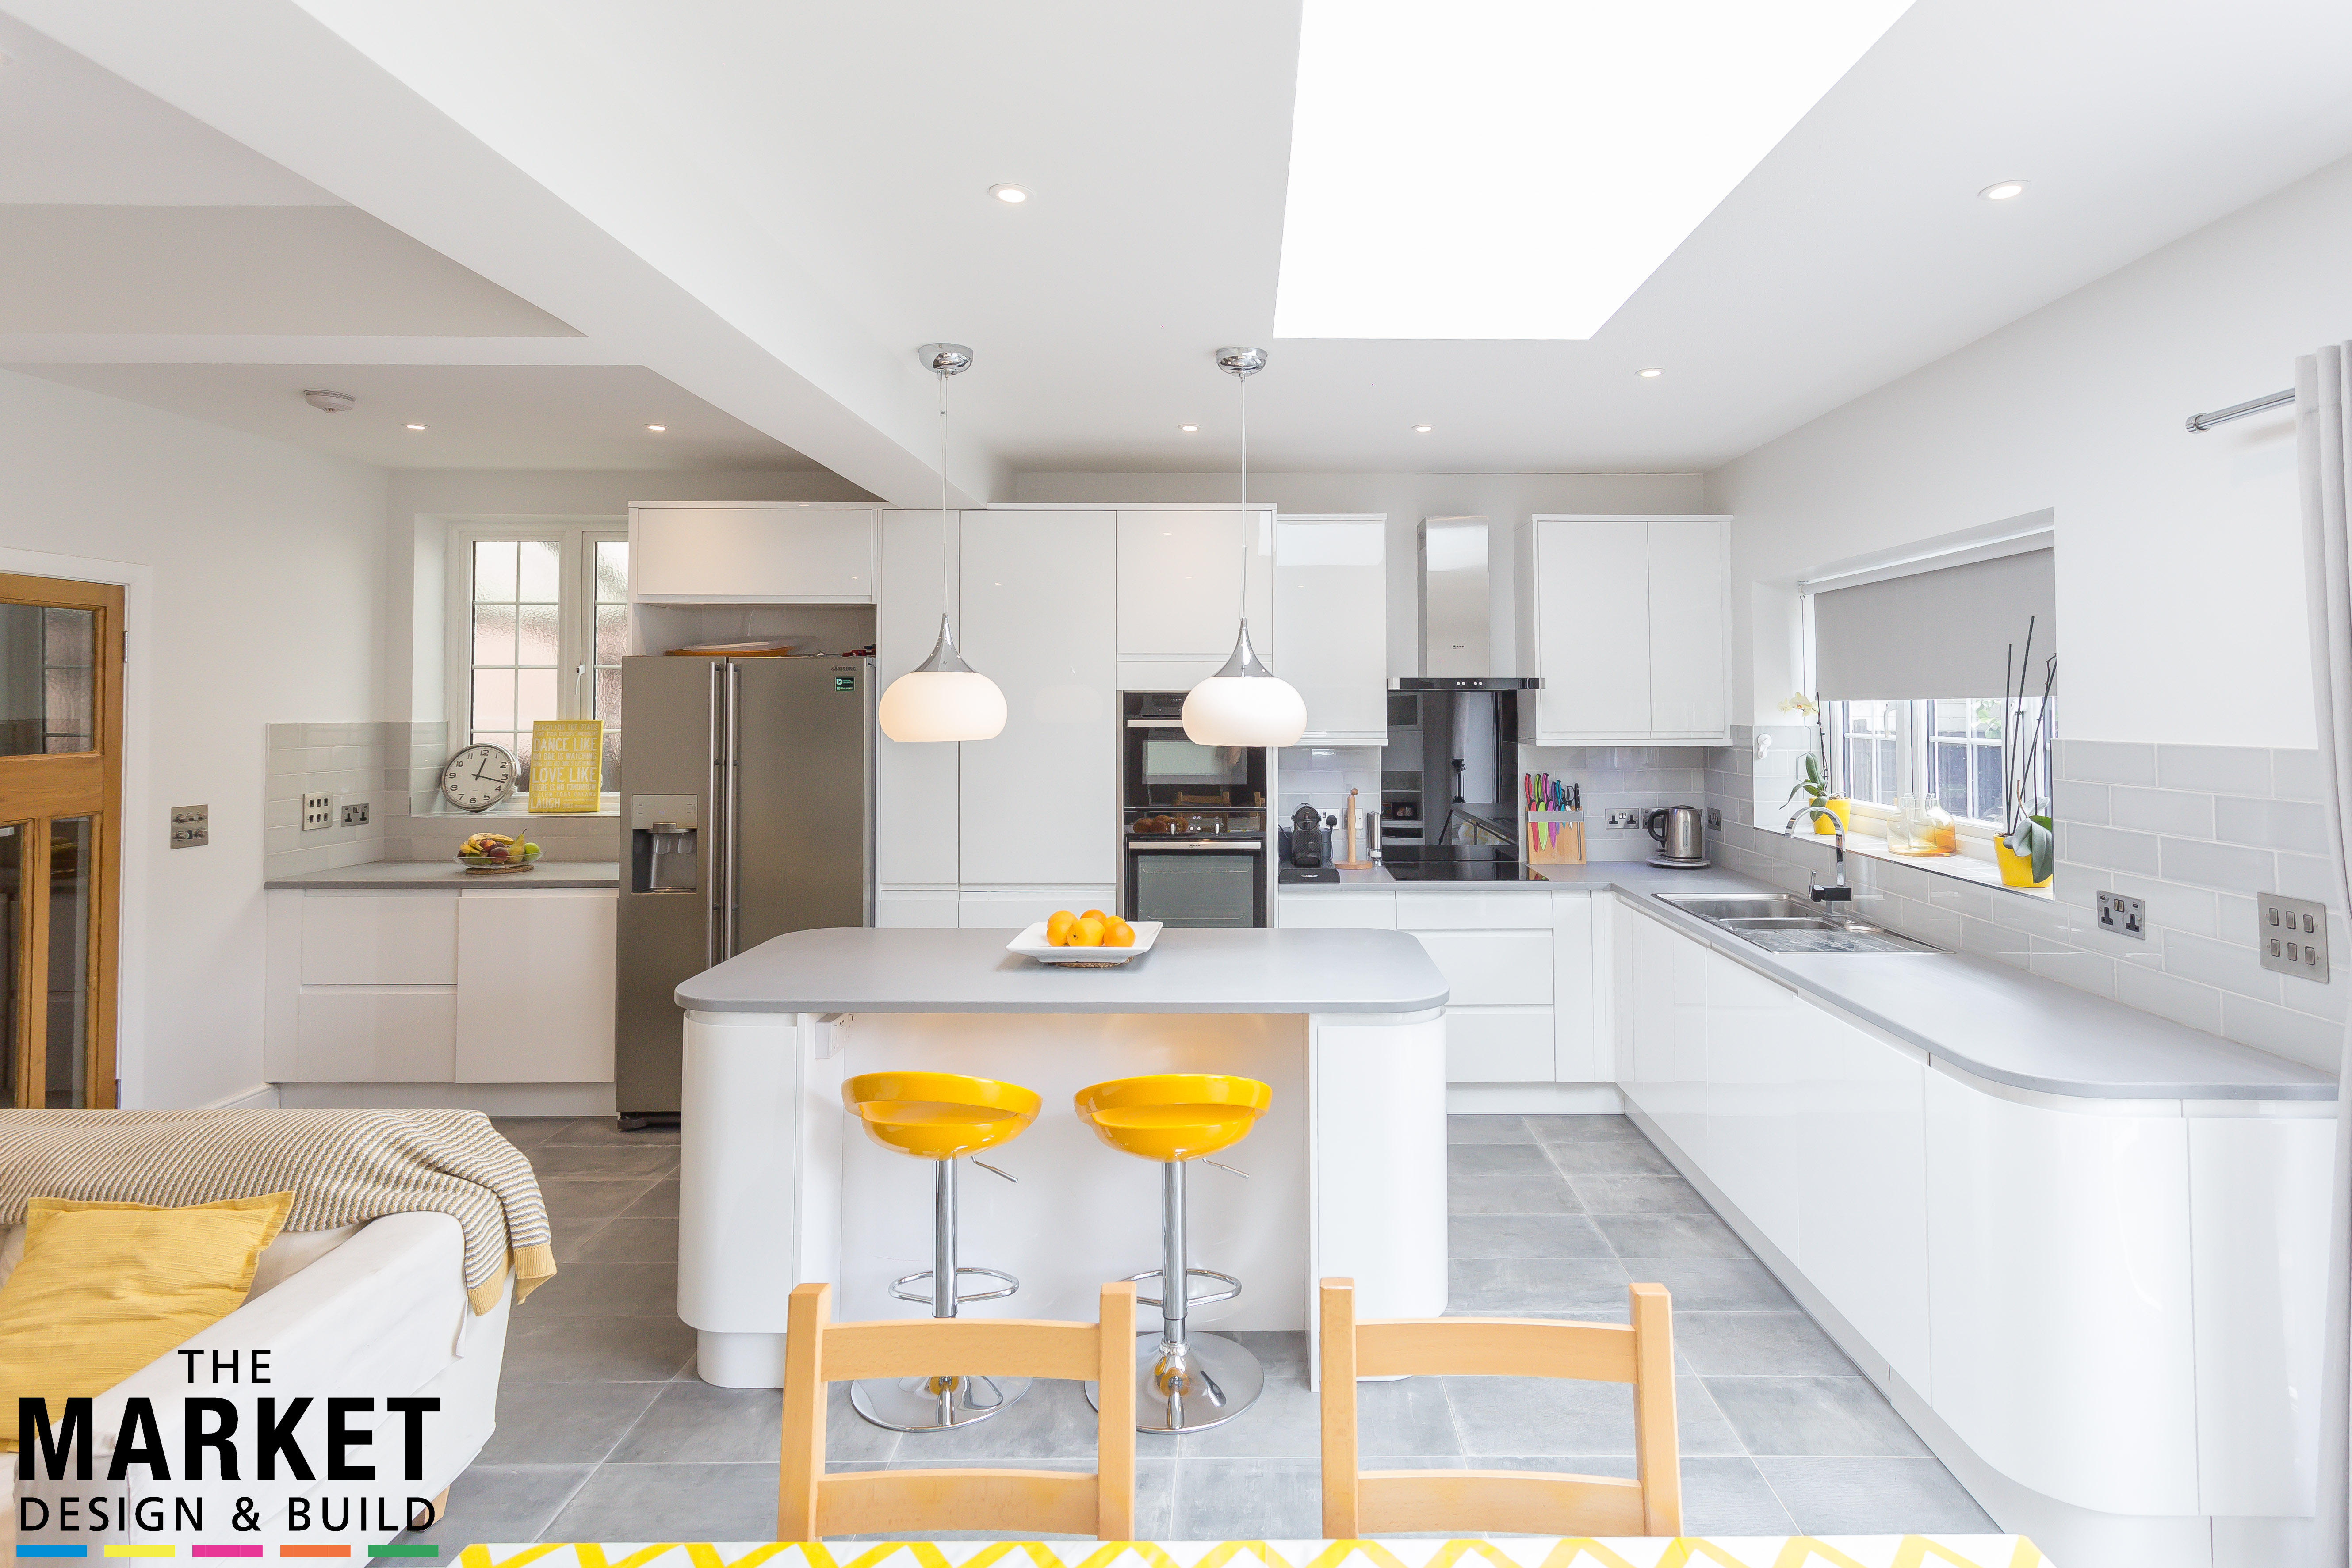 Case Study for a Beautiful, Light Kitchen Extension in London